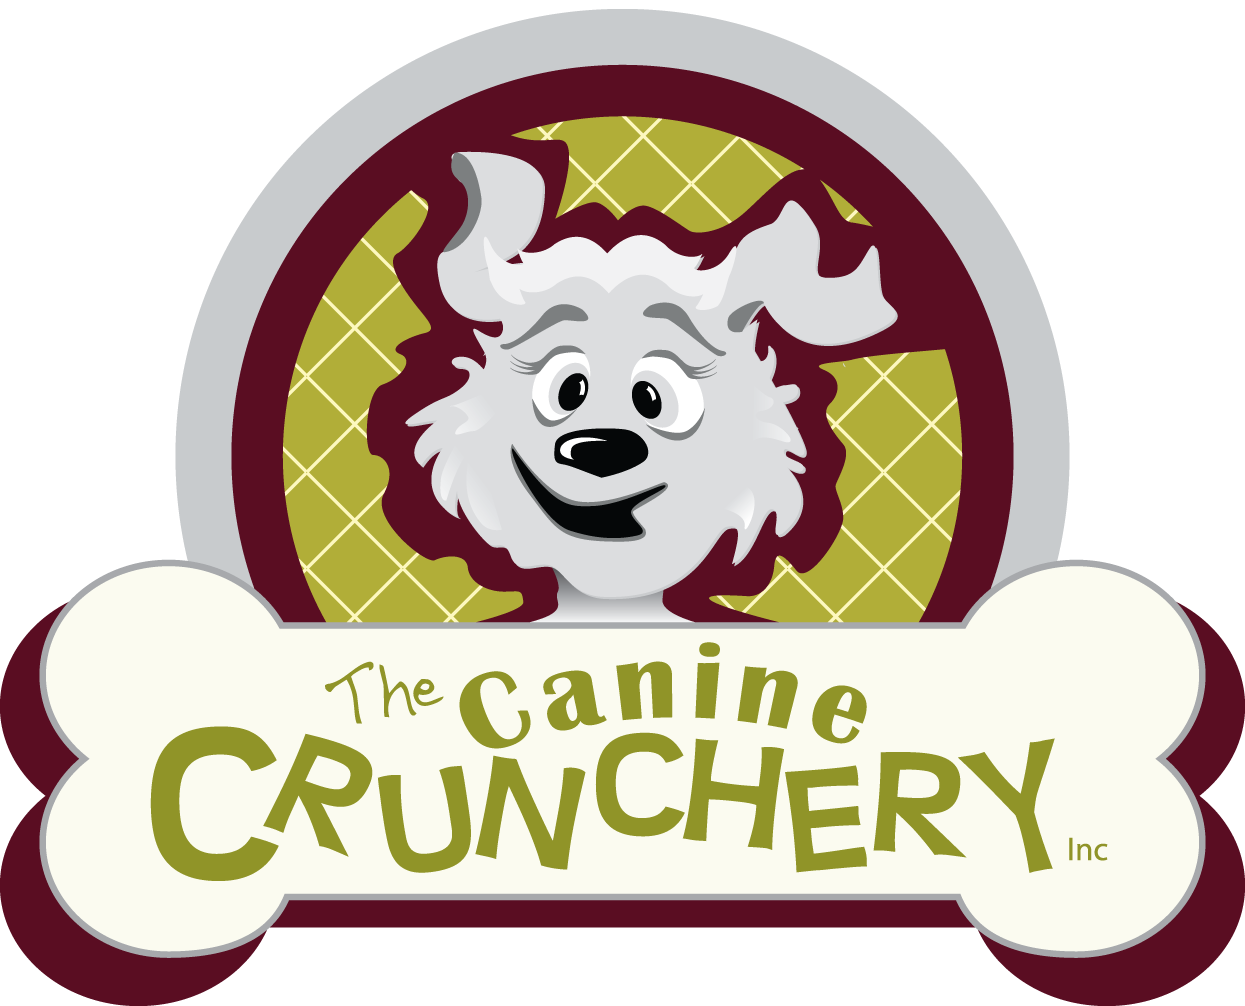 The Canine Crunchery, Inc.